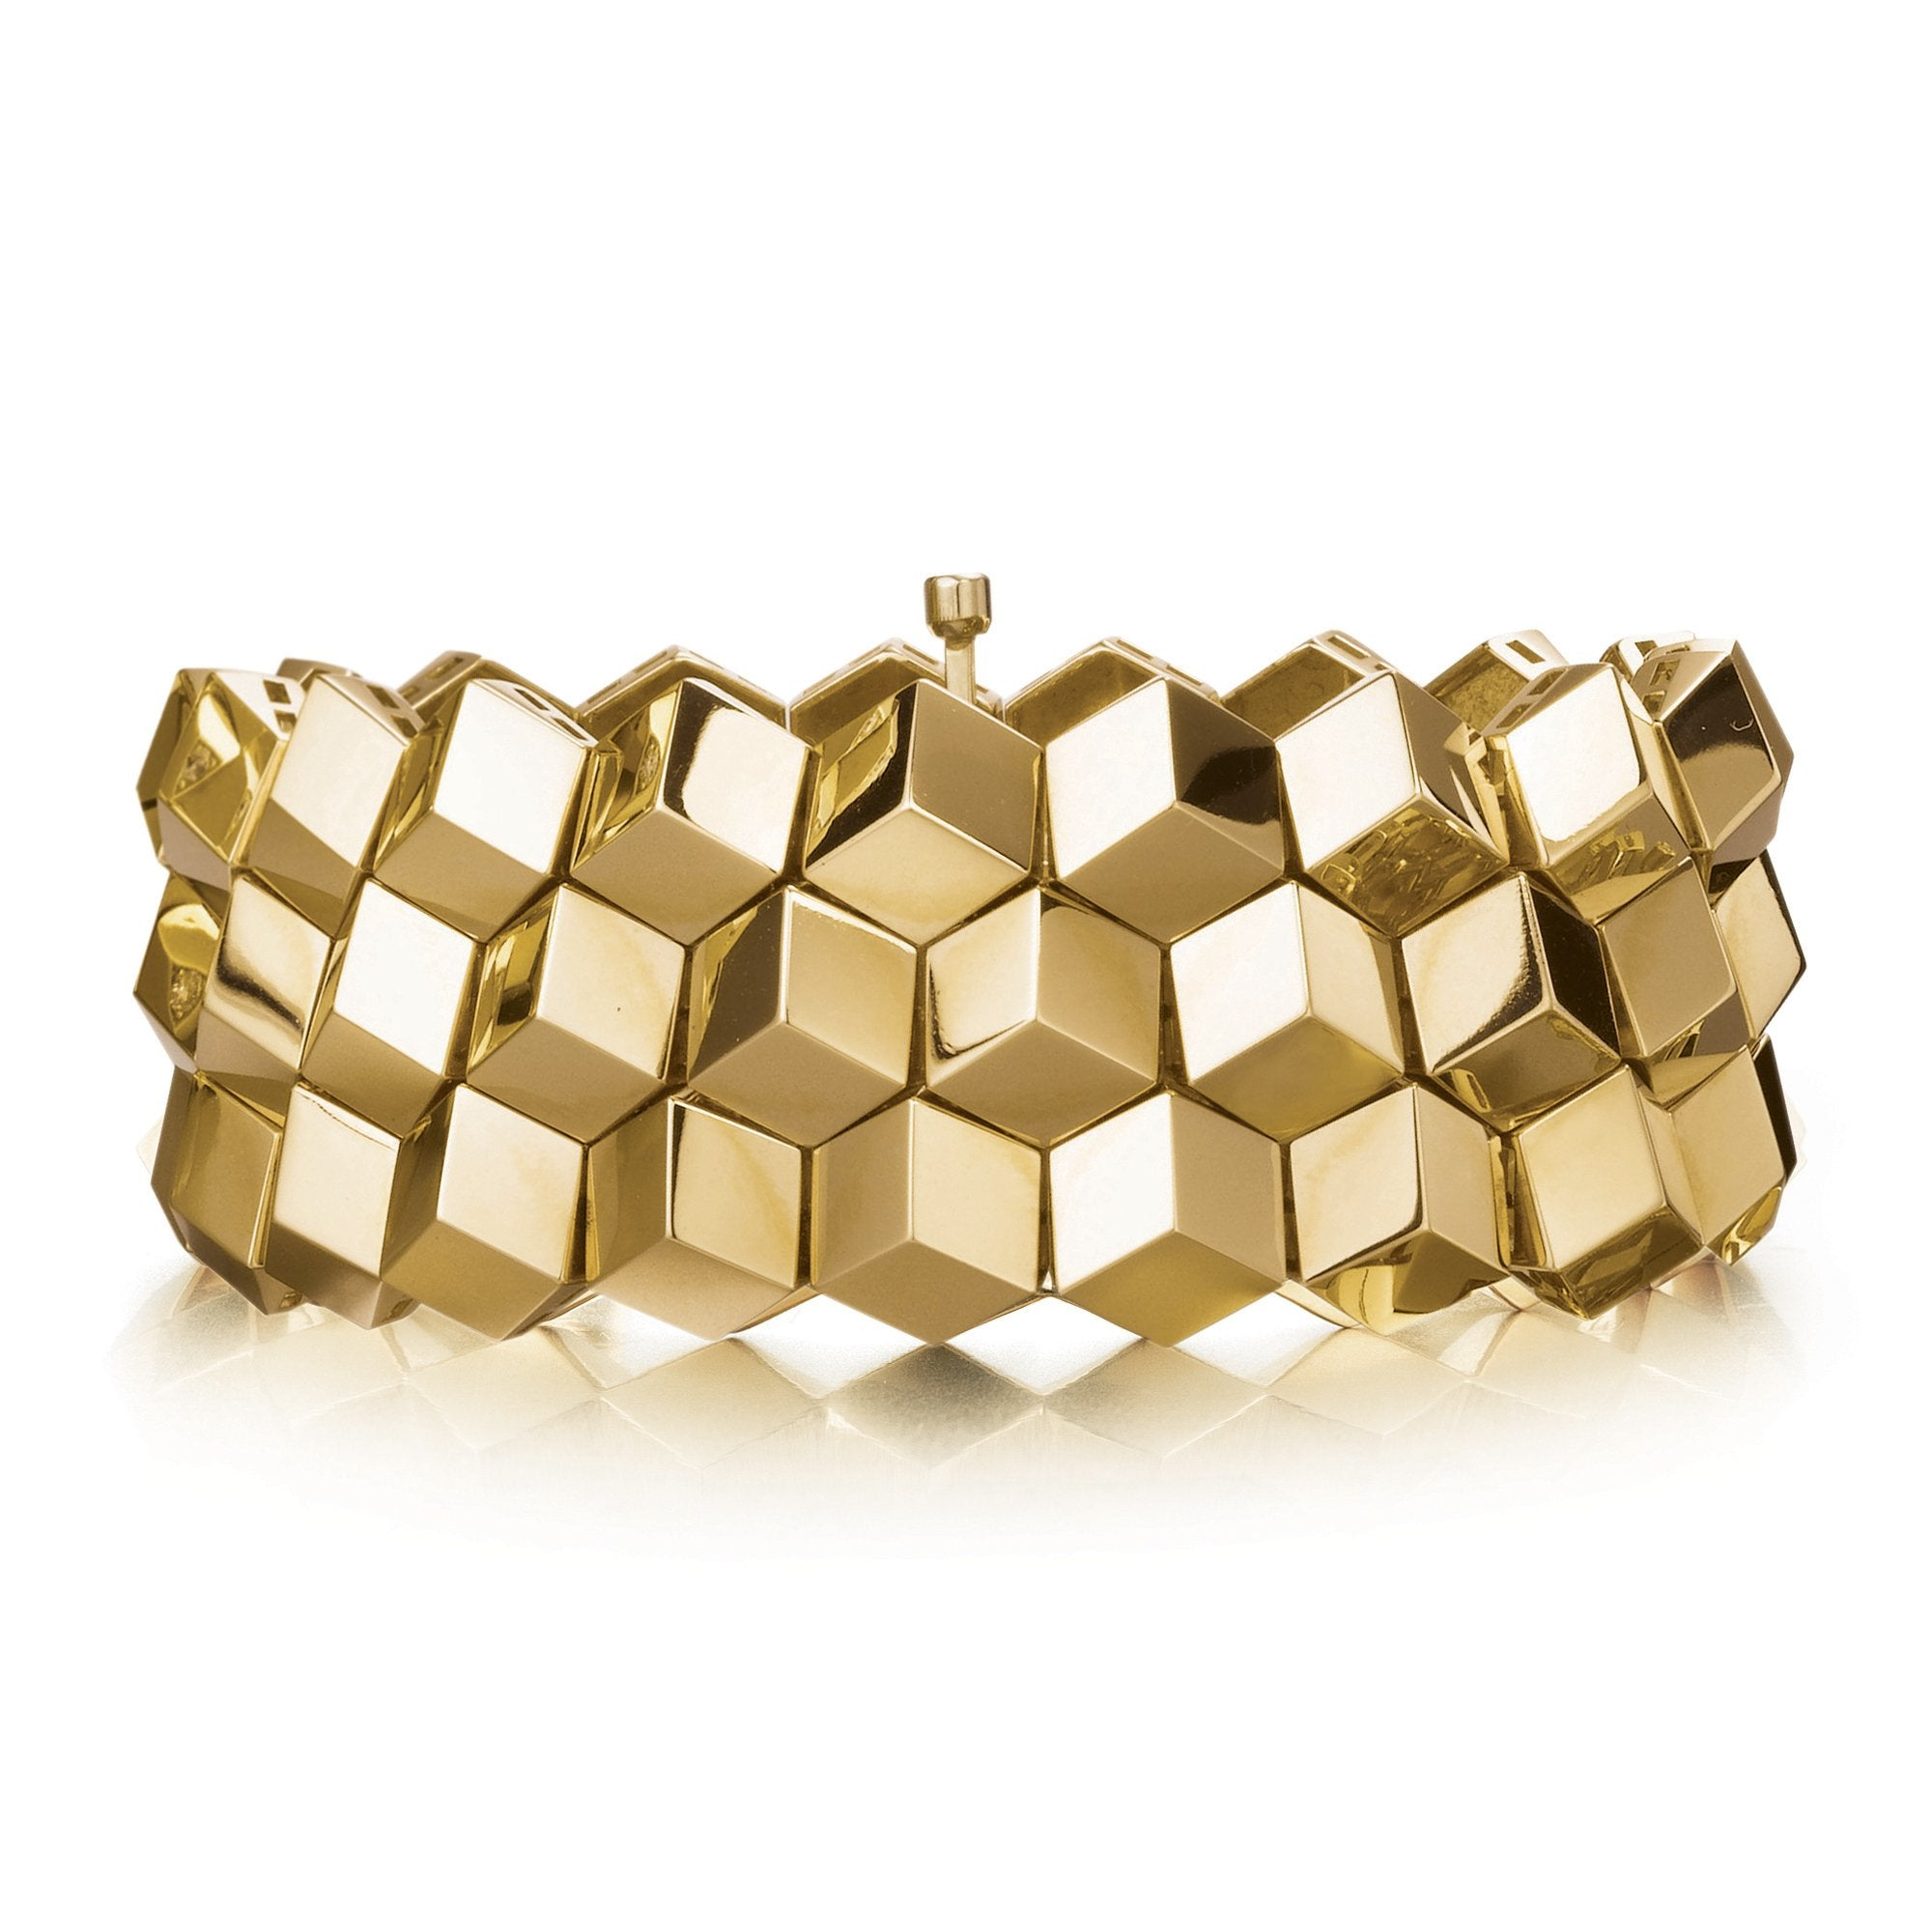 Yellow Gold 'Brillante®' Bracelet, Medium - Paolo Costagli - 1